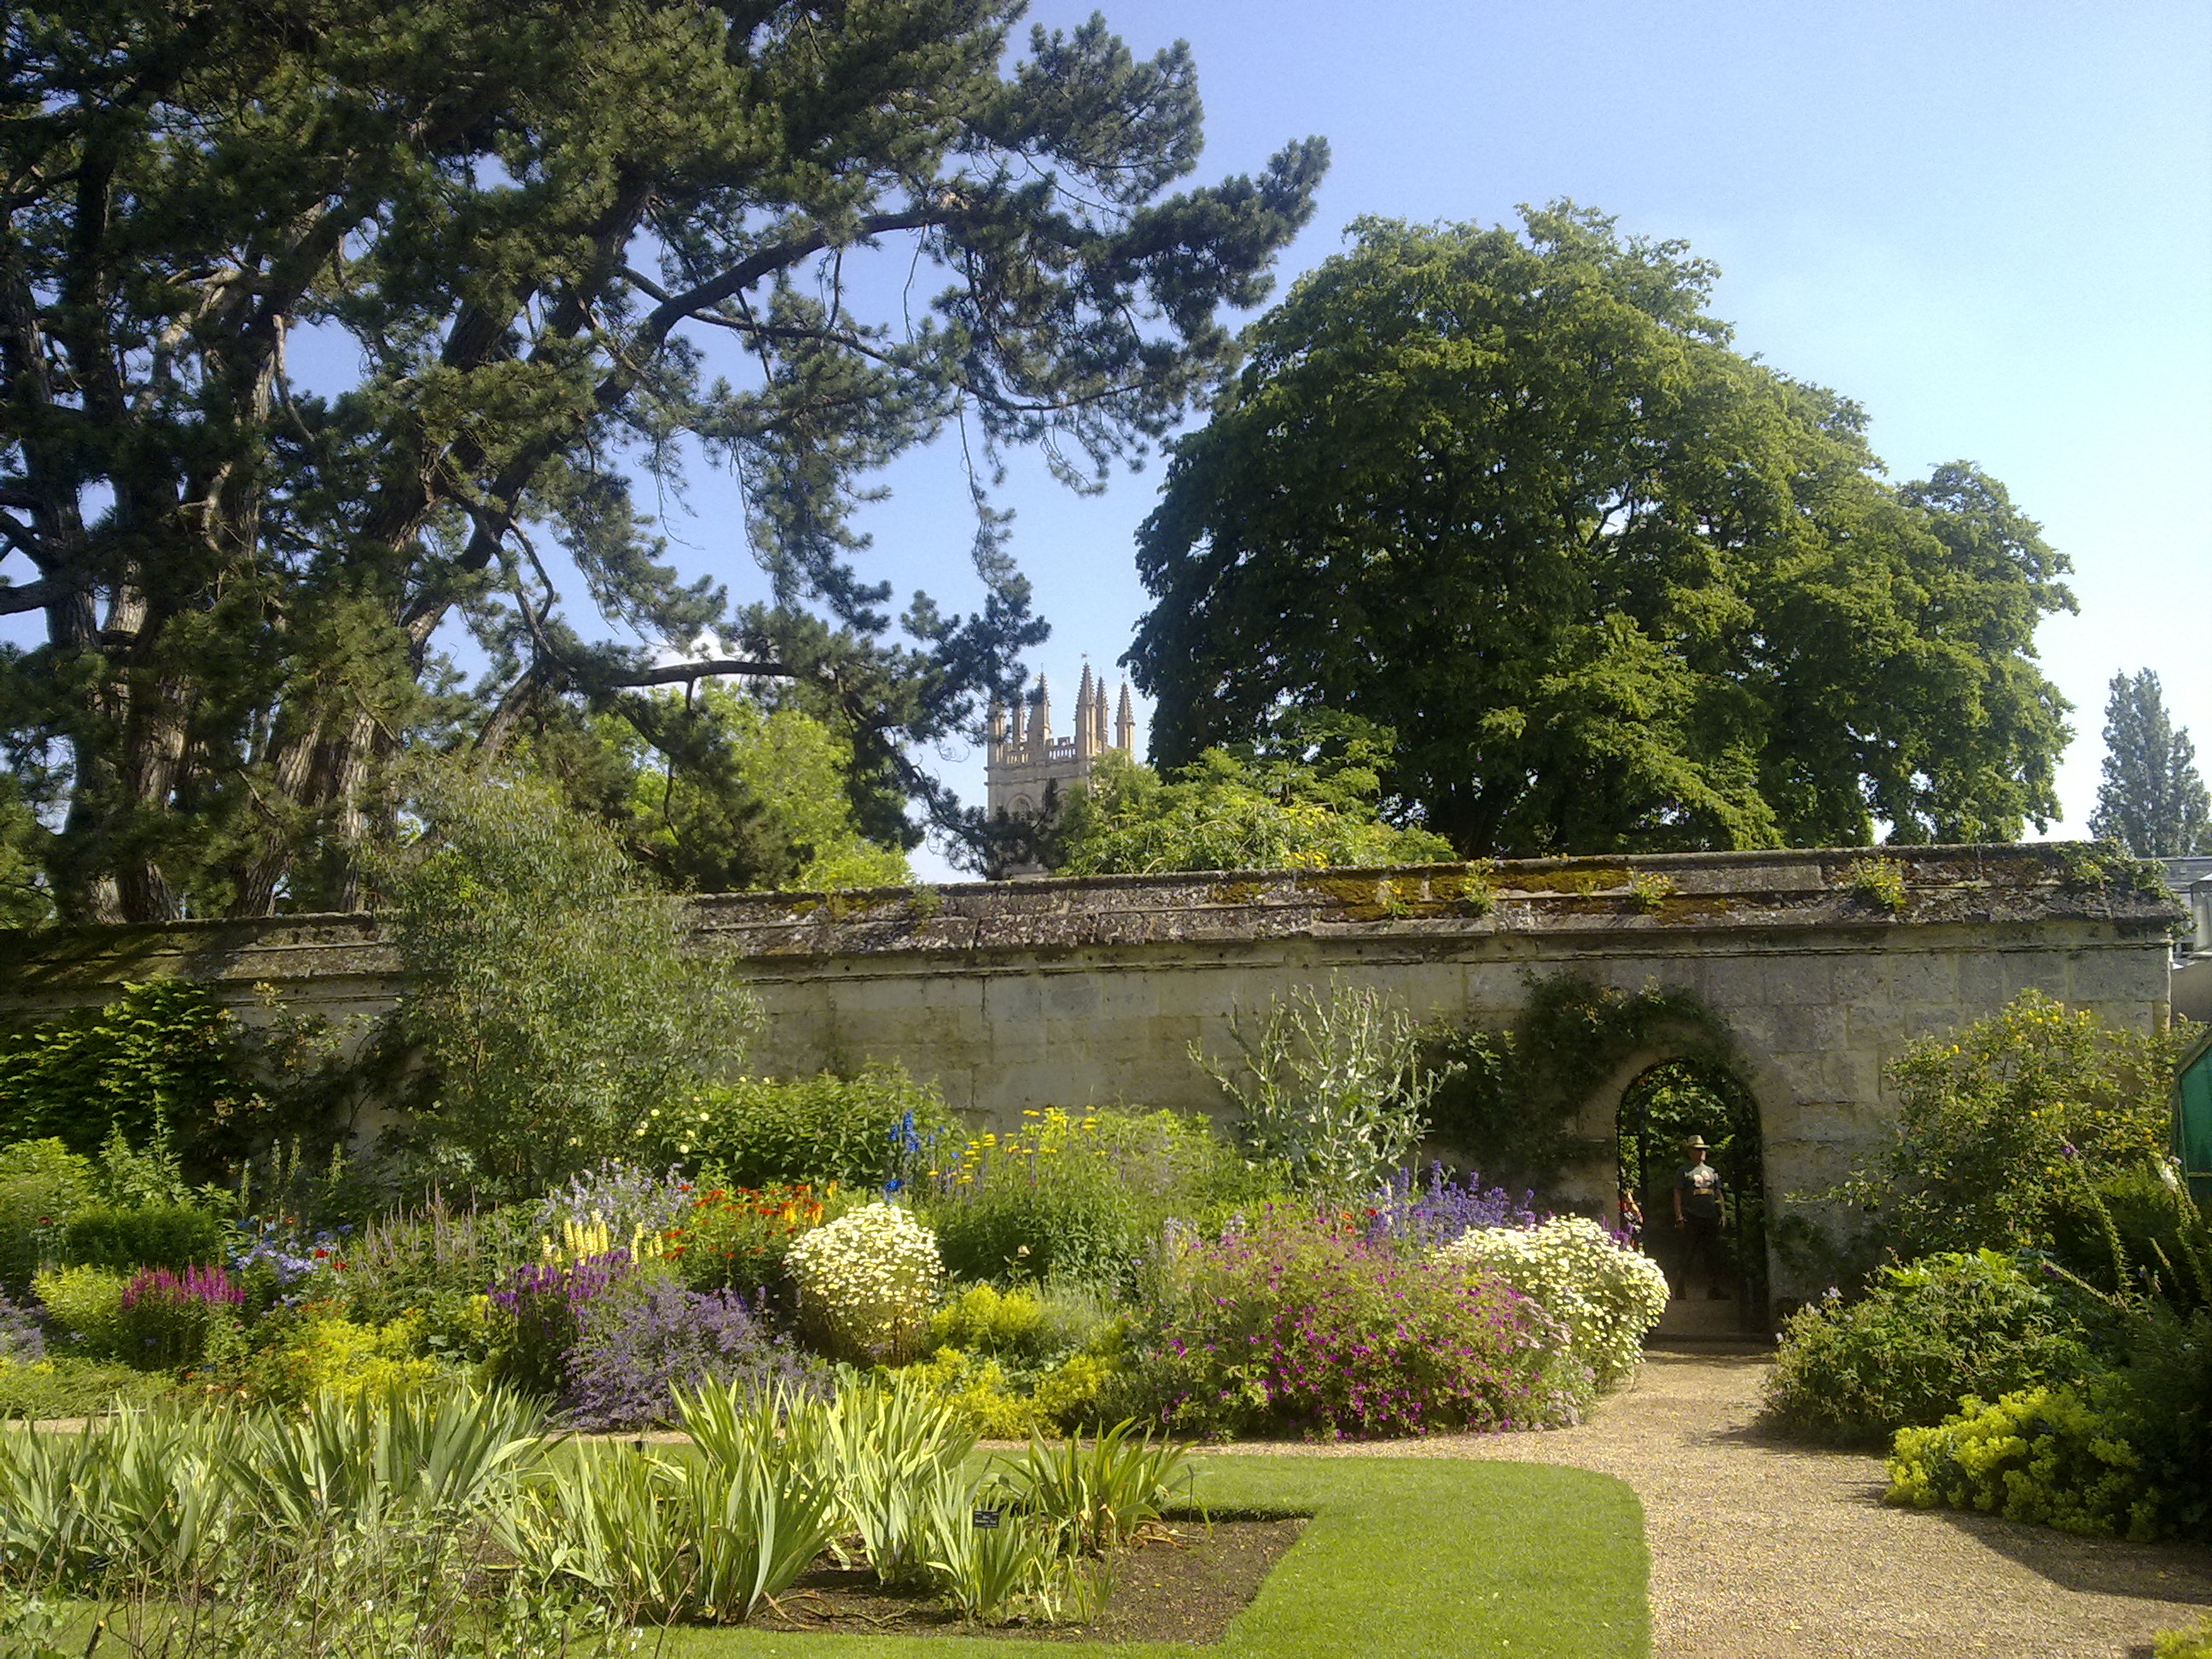 File:An Obscured Magdalen Great Tower From The Botanic Gardens